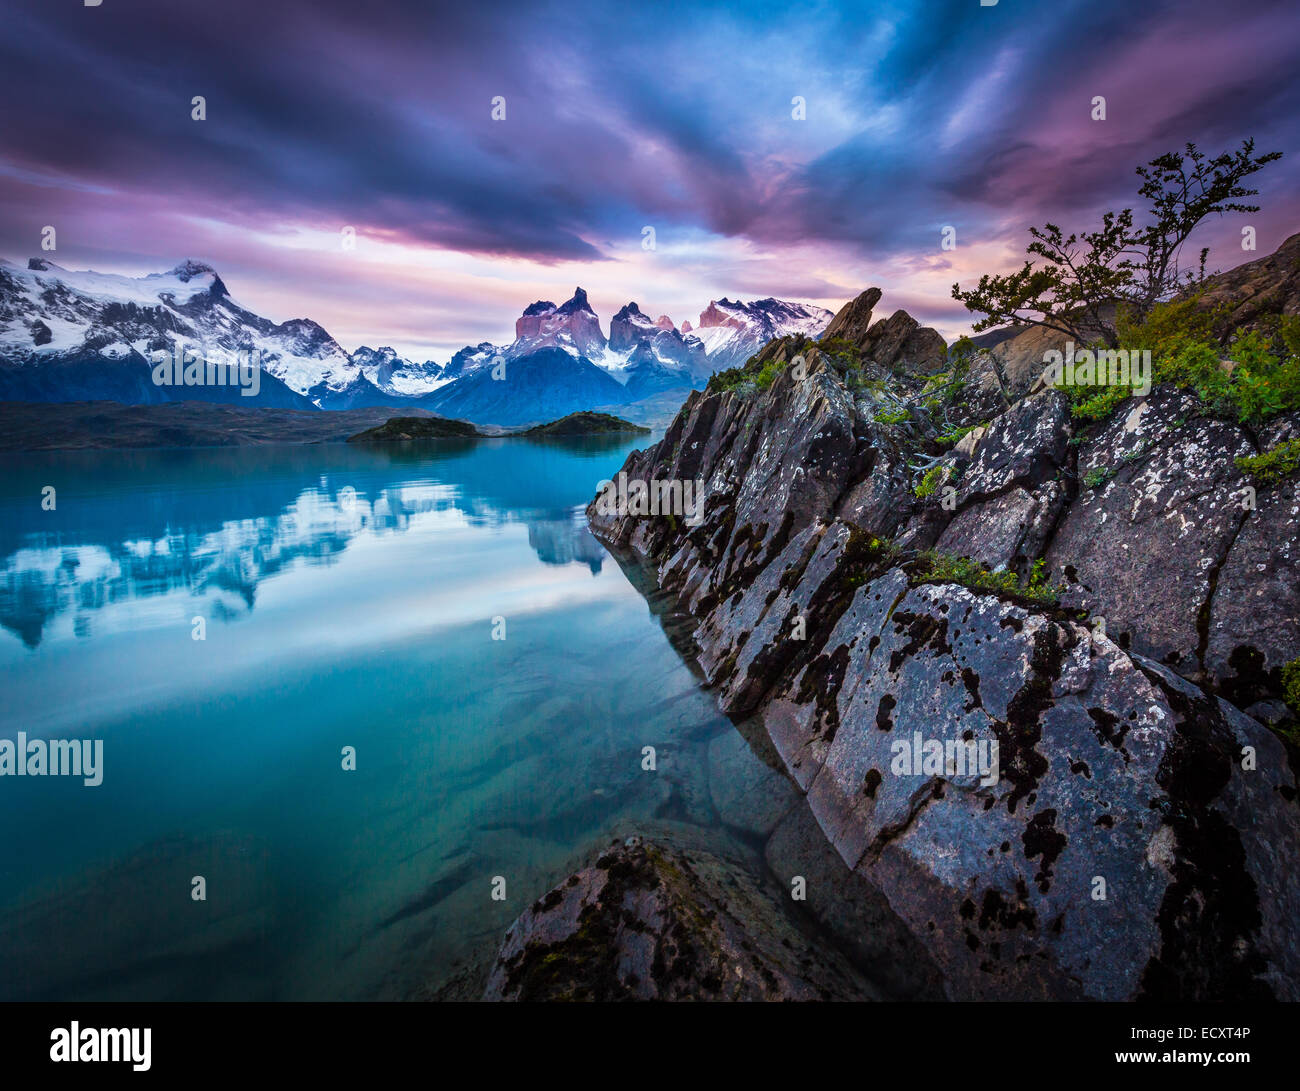 Torres del Paine National Park encompasses mountains, glaciers, lakes, and rivers in southern Chilean Patagonia. Stock Photo